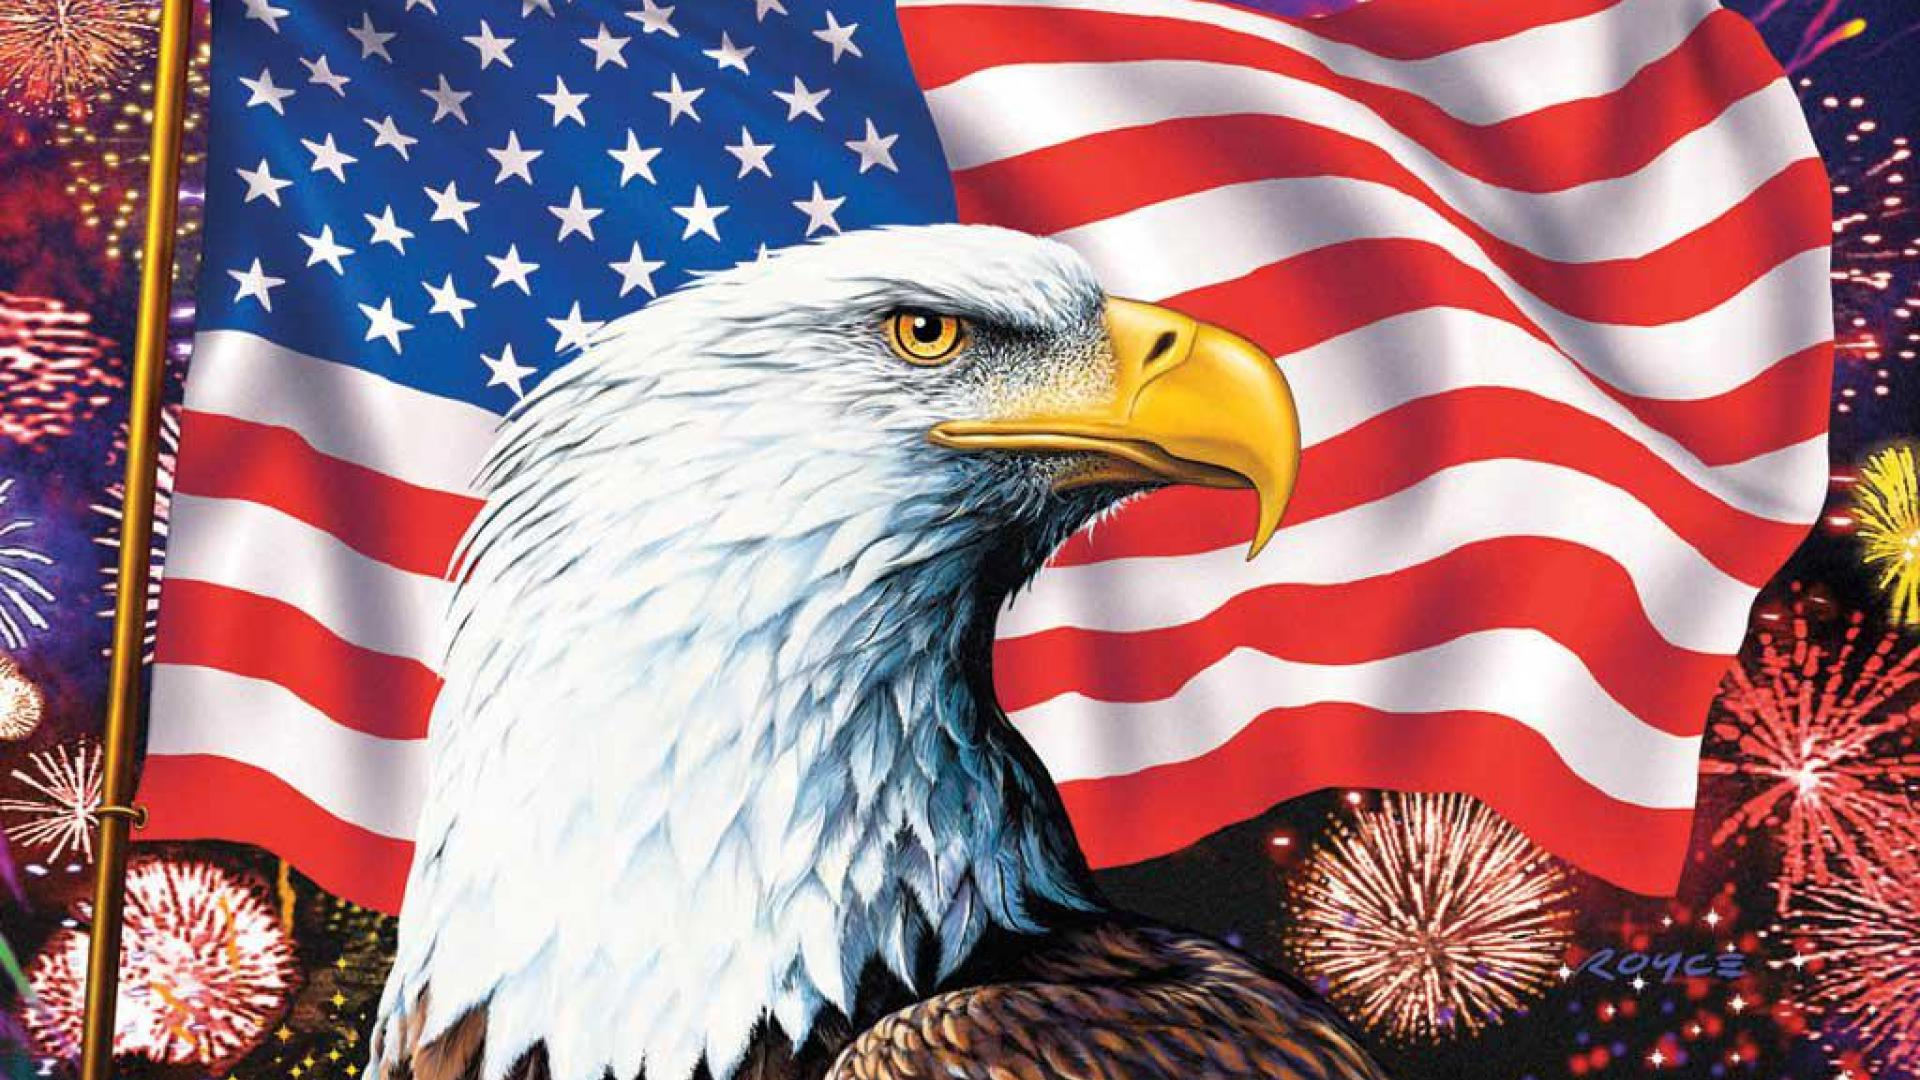 American eagle   148725   High Quality and Resolution Wallpapers on 1920x1080